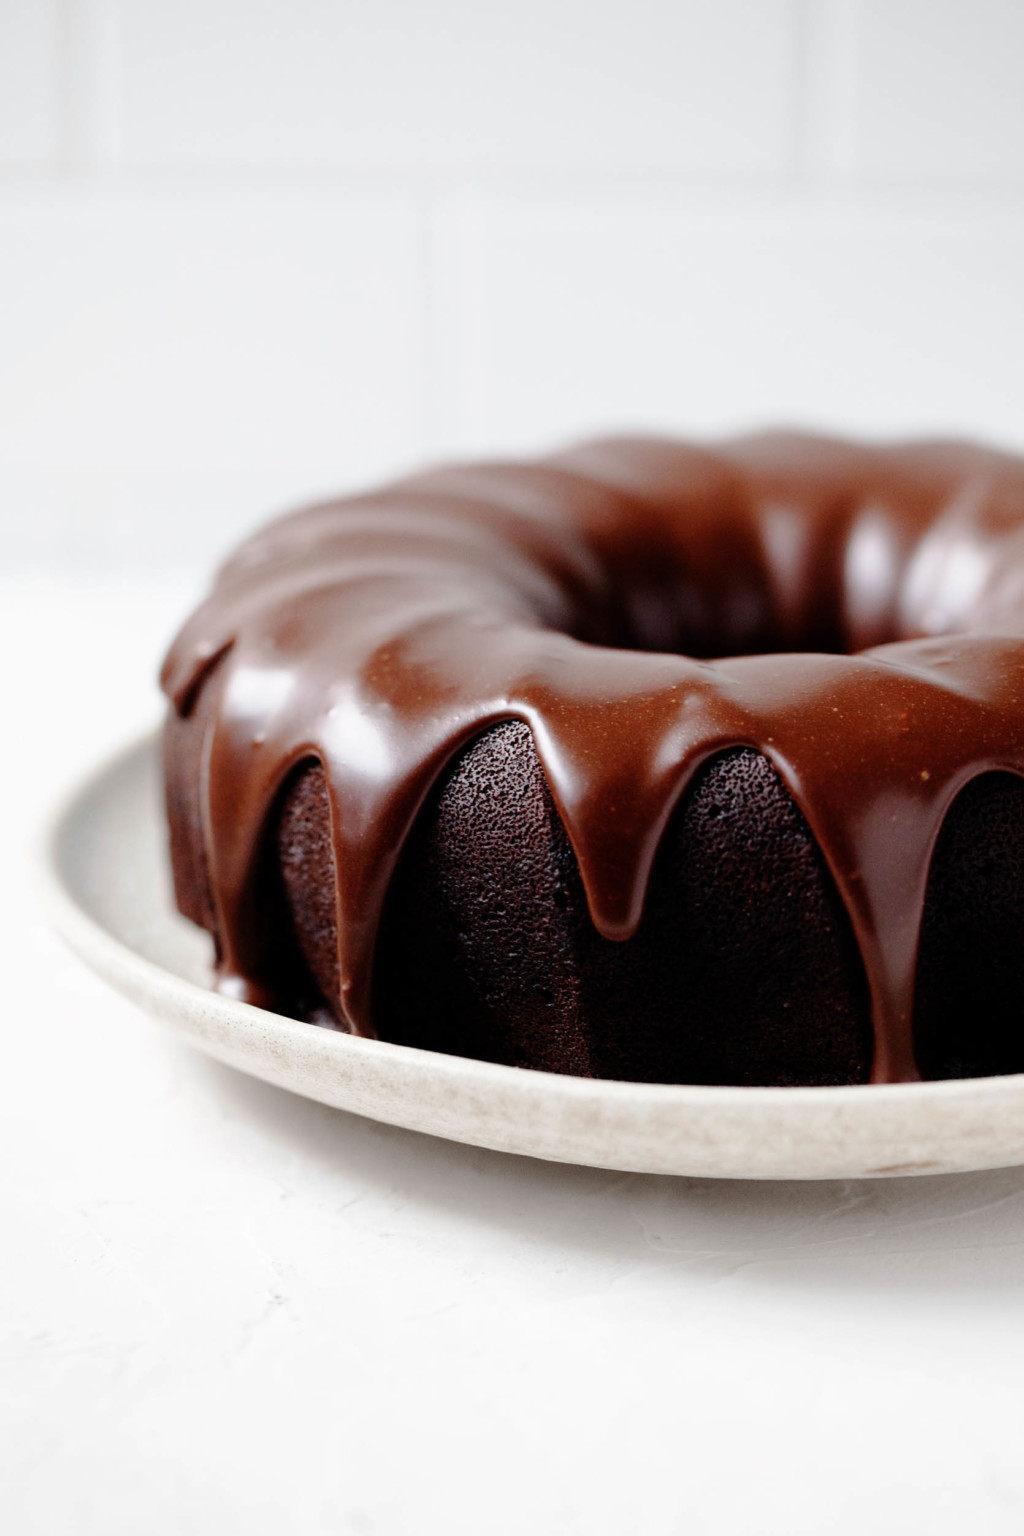 An angled photograph of a vegan chocolate bundt cake, which is placed on a serving platter and covered in a chocolate glaze.